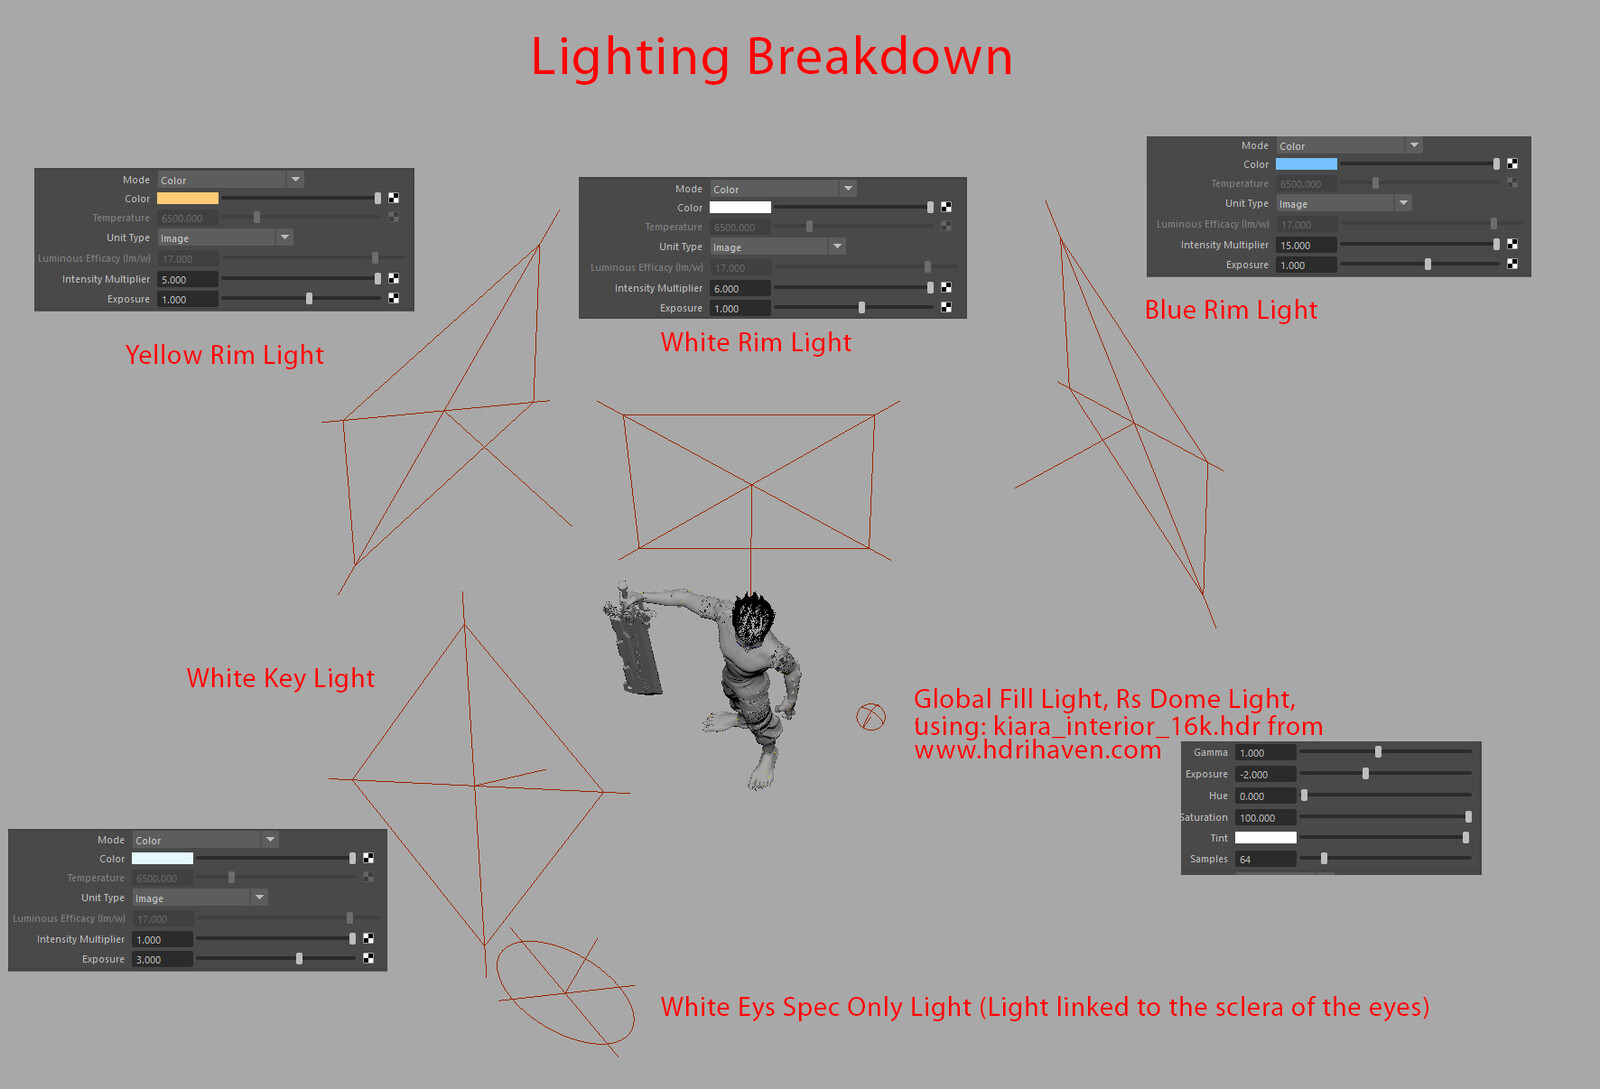 Lighting Breakdown